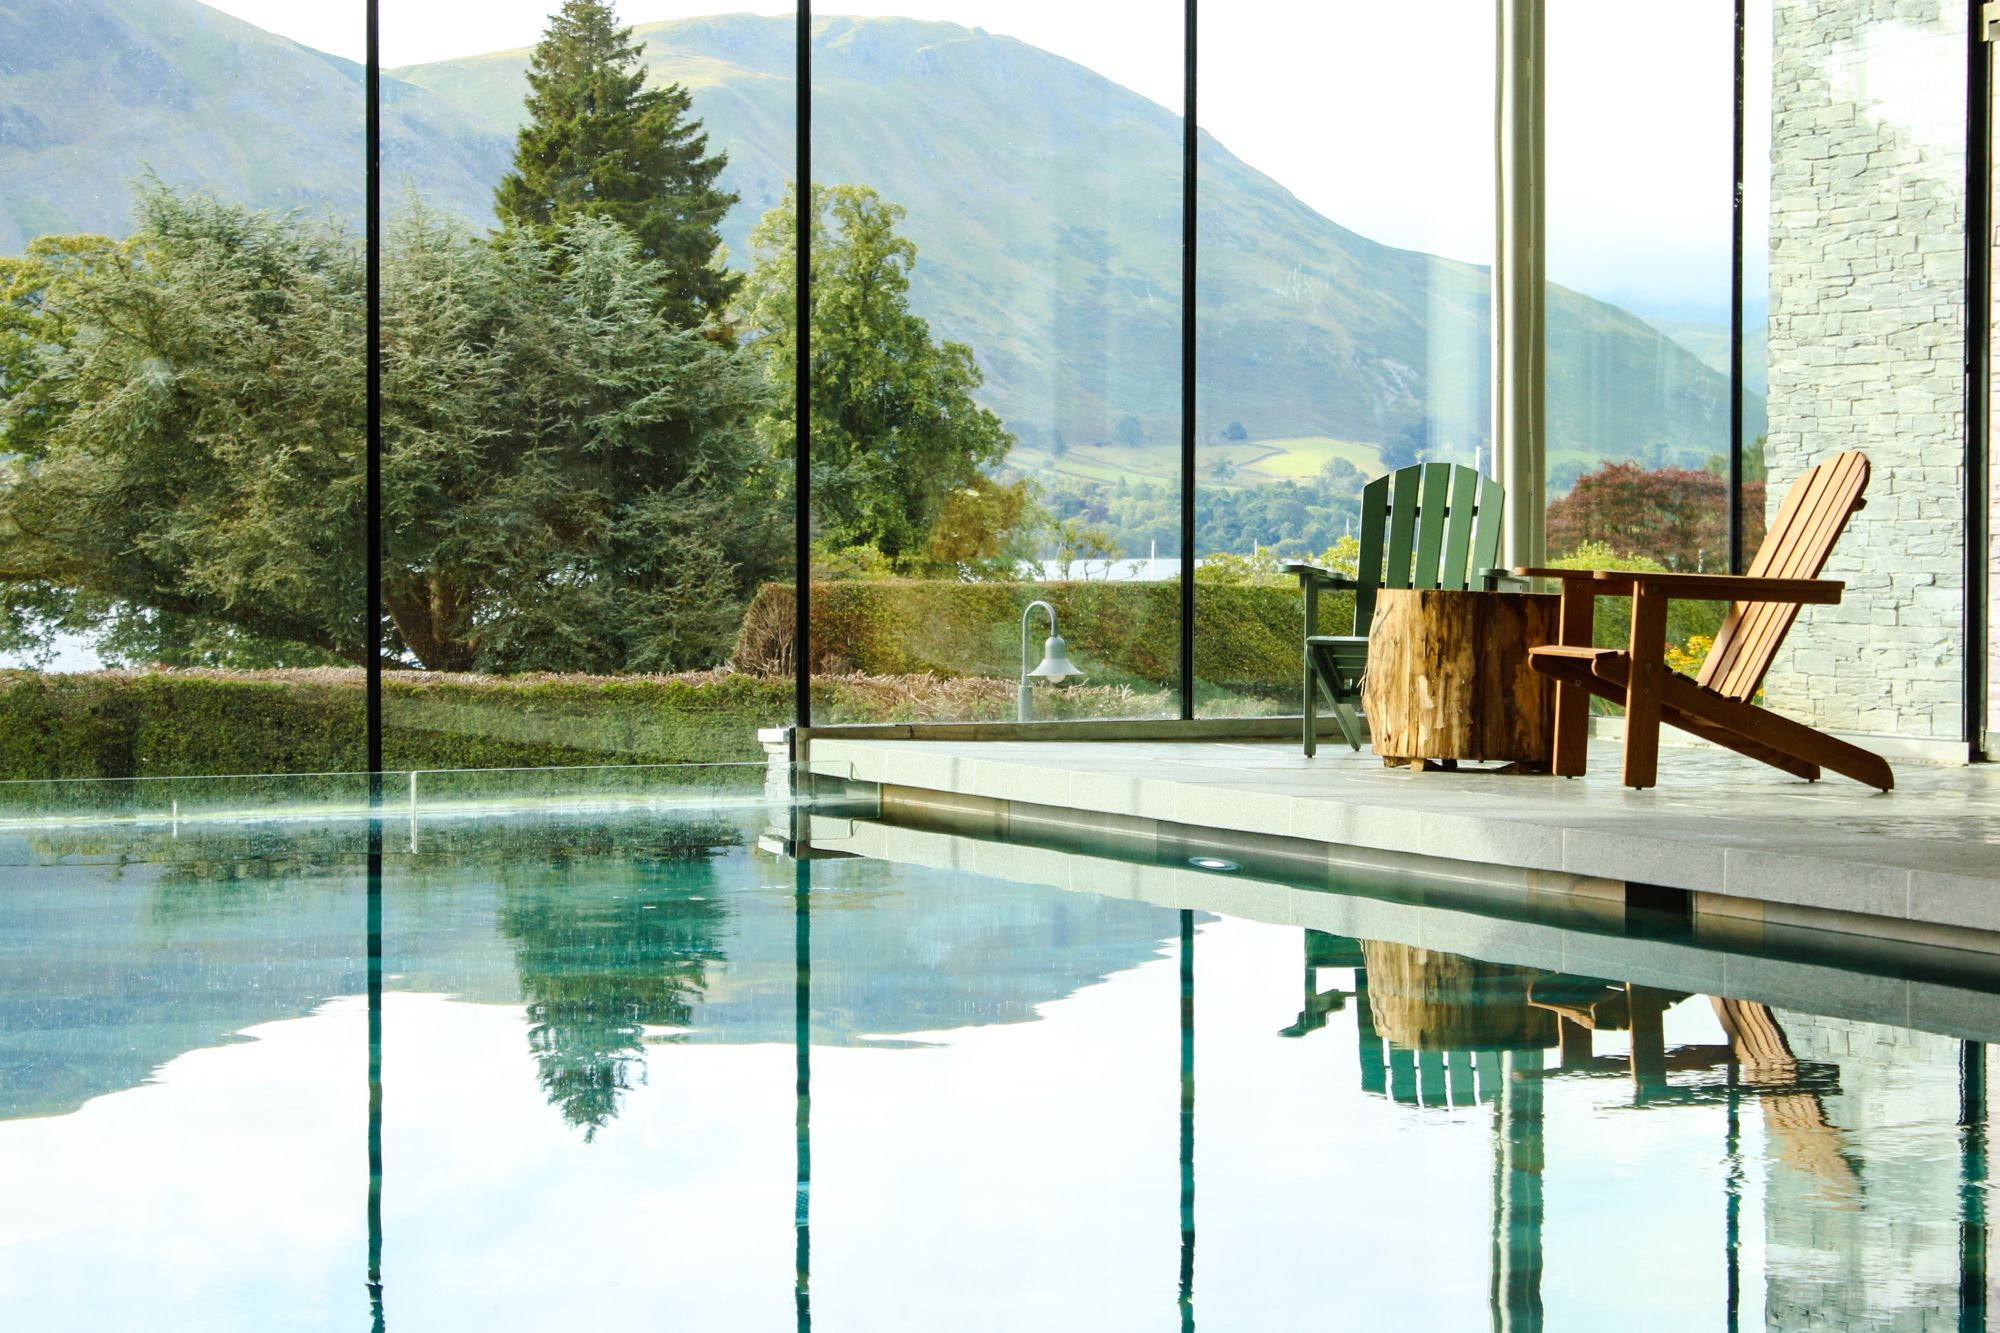 The swimming pool with lake views at Another Place, The Lake in Cumbria